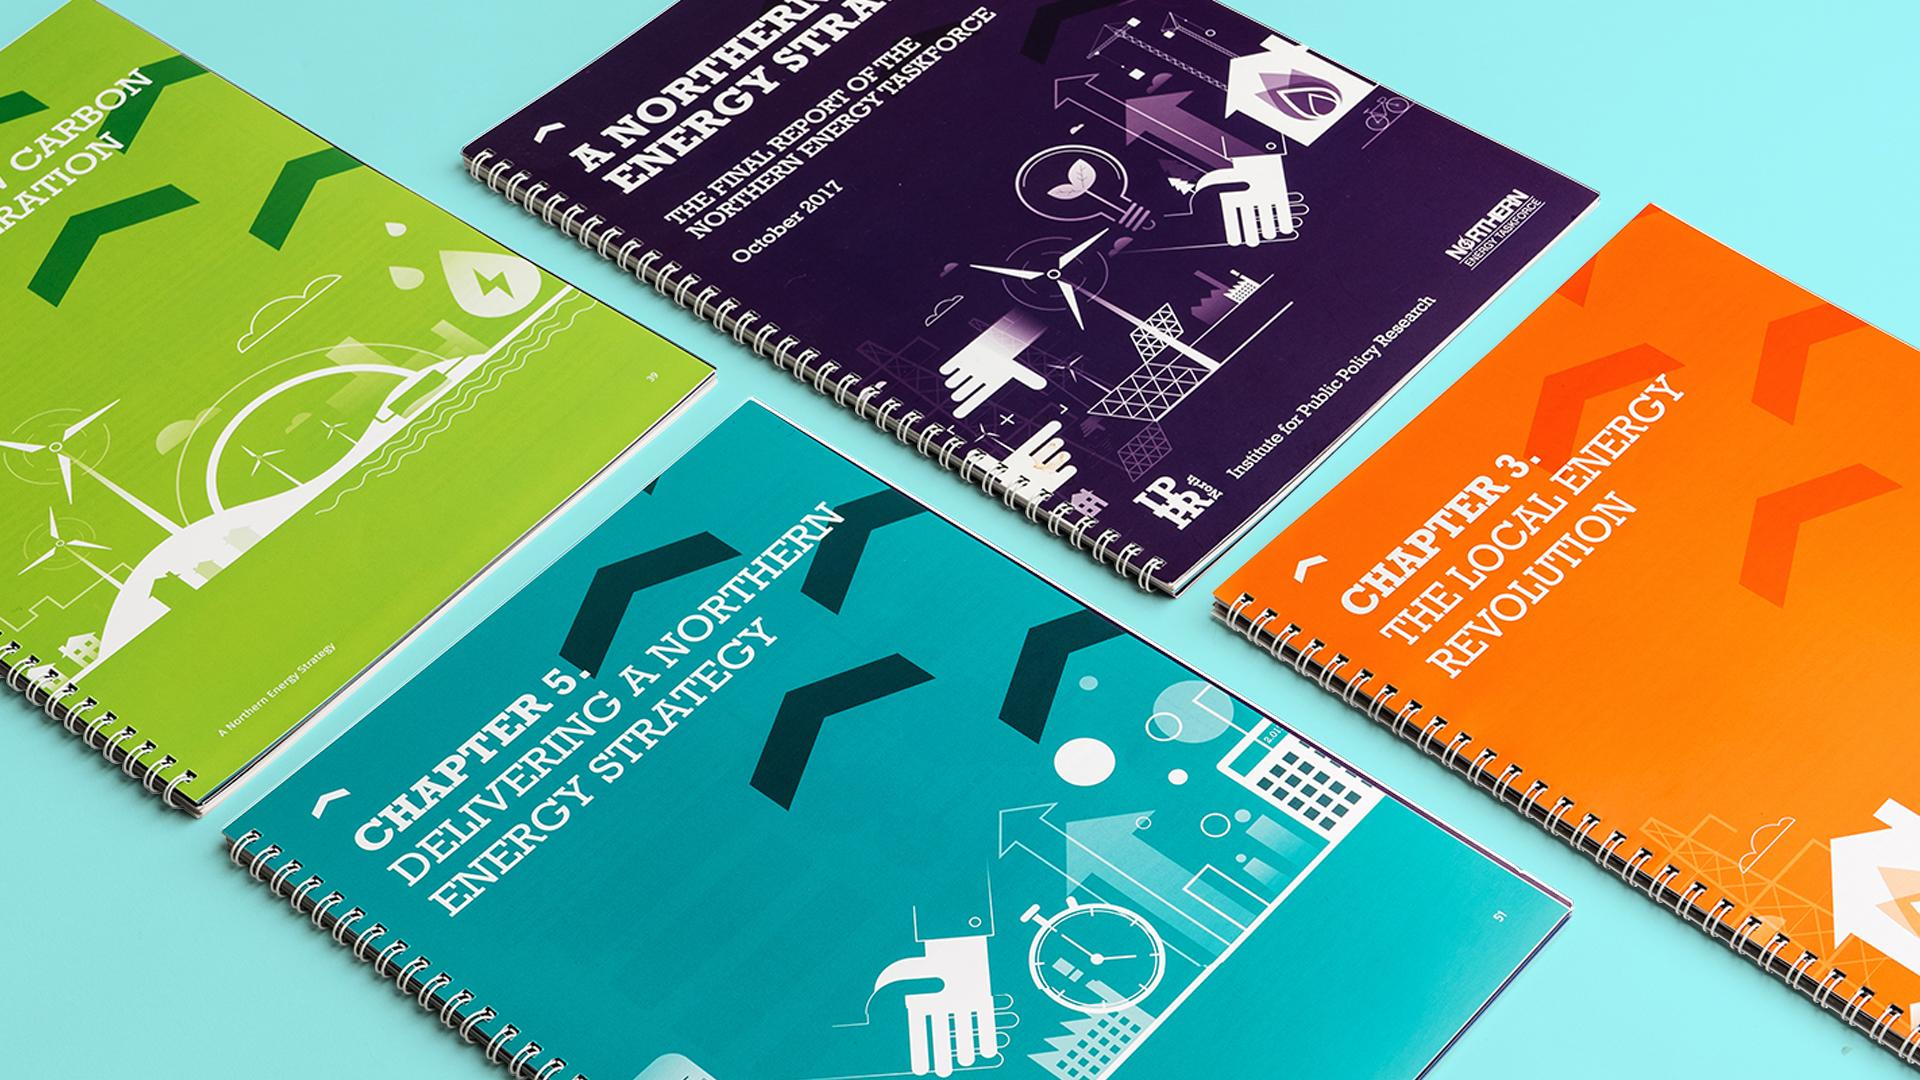 IPPR Energy plans series of booklets